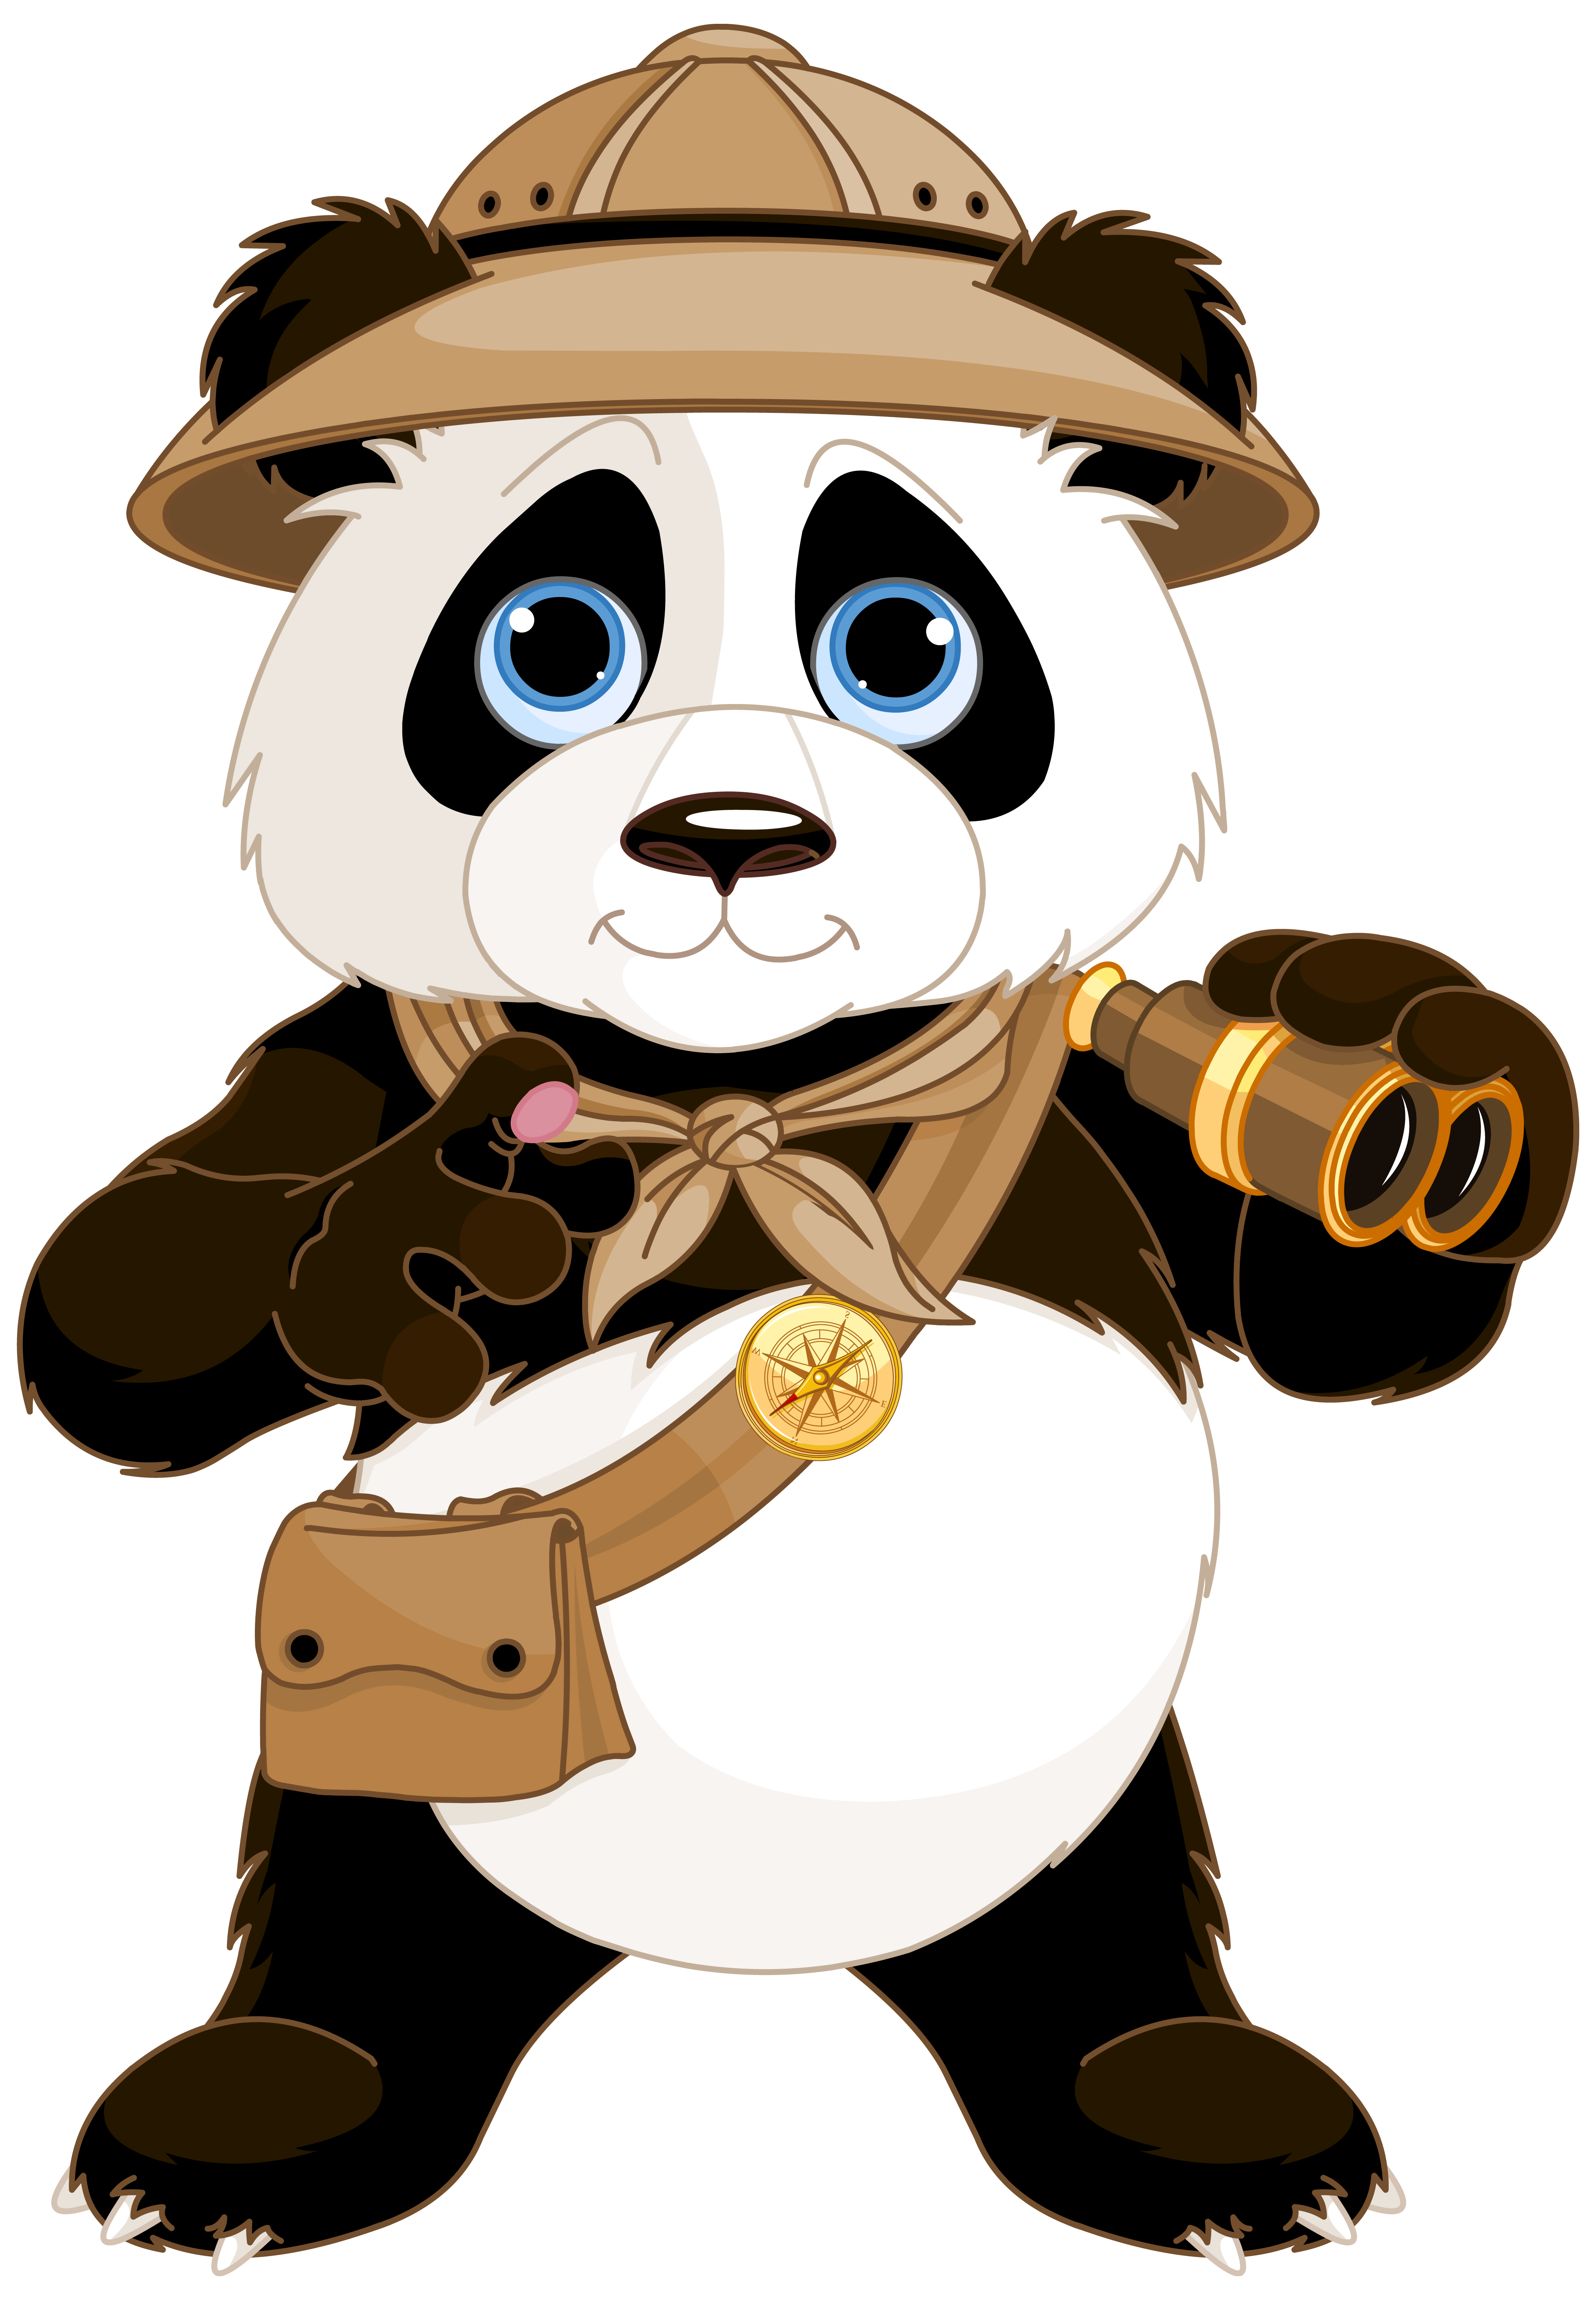 Panda bear halloween clipart picture library library Cute Panda PNG Clipart Image | Gallery Yopriceville - High-Quality ... picture library library